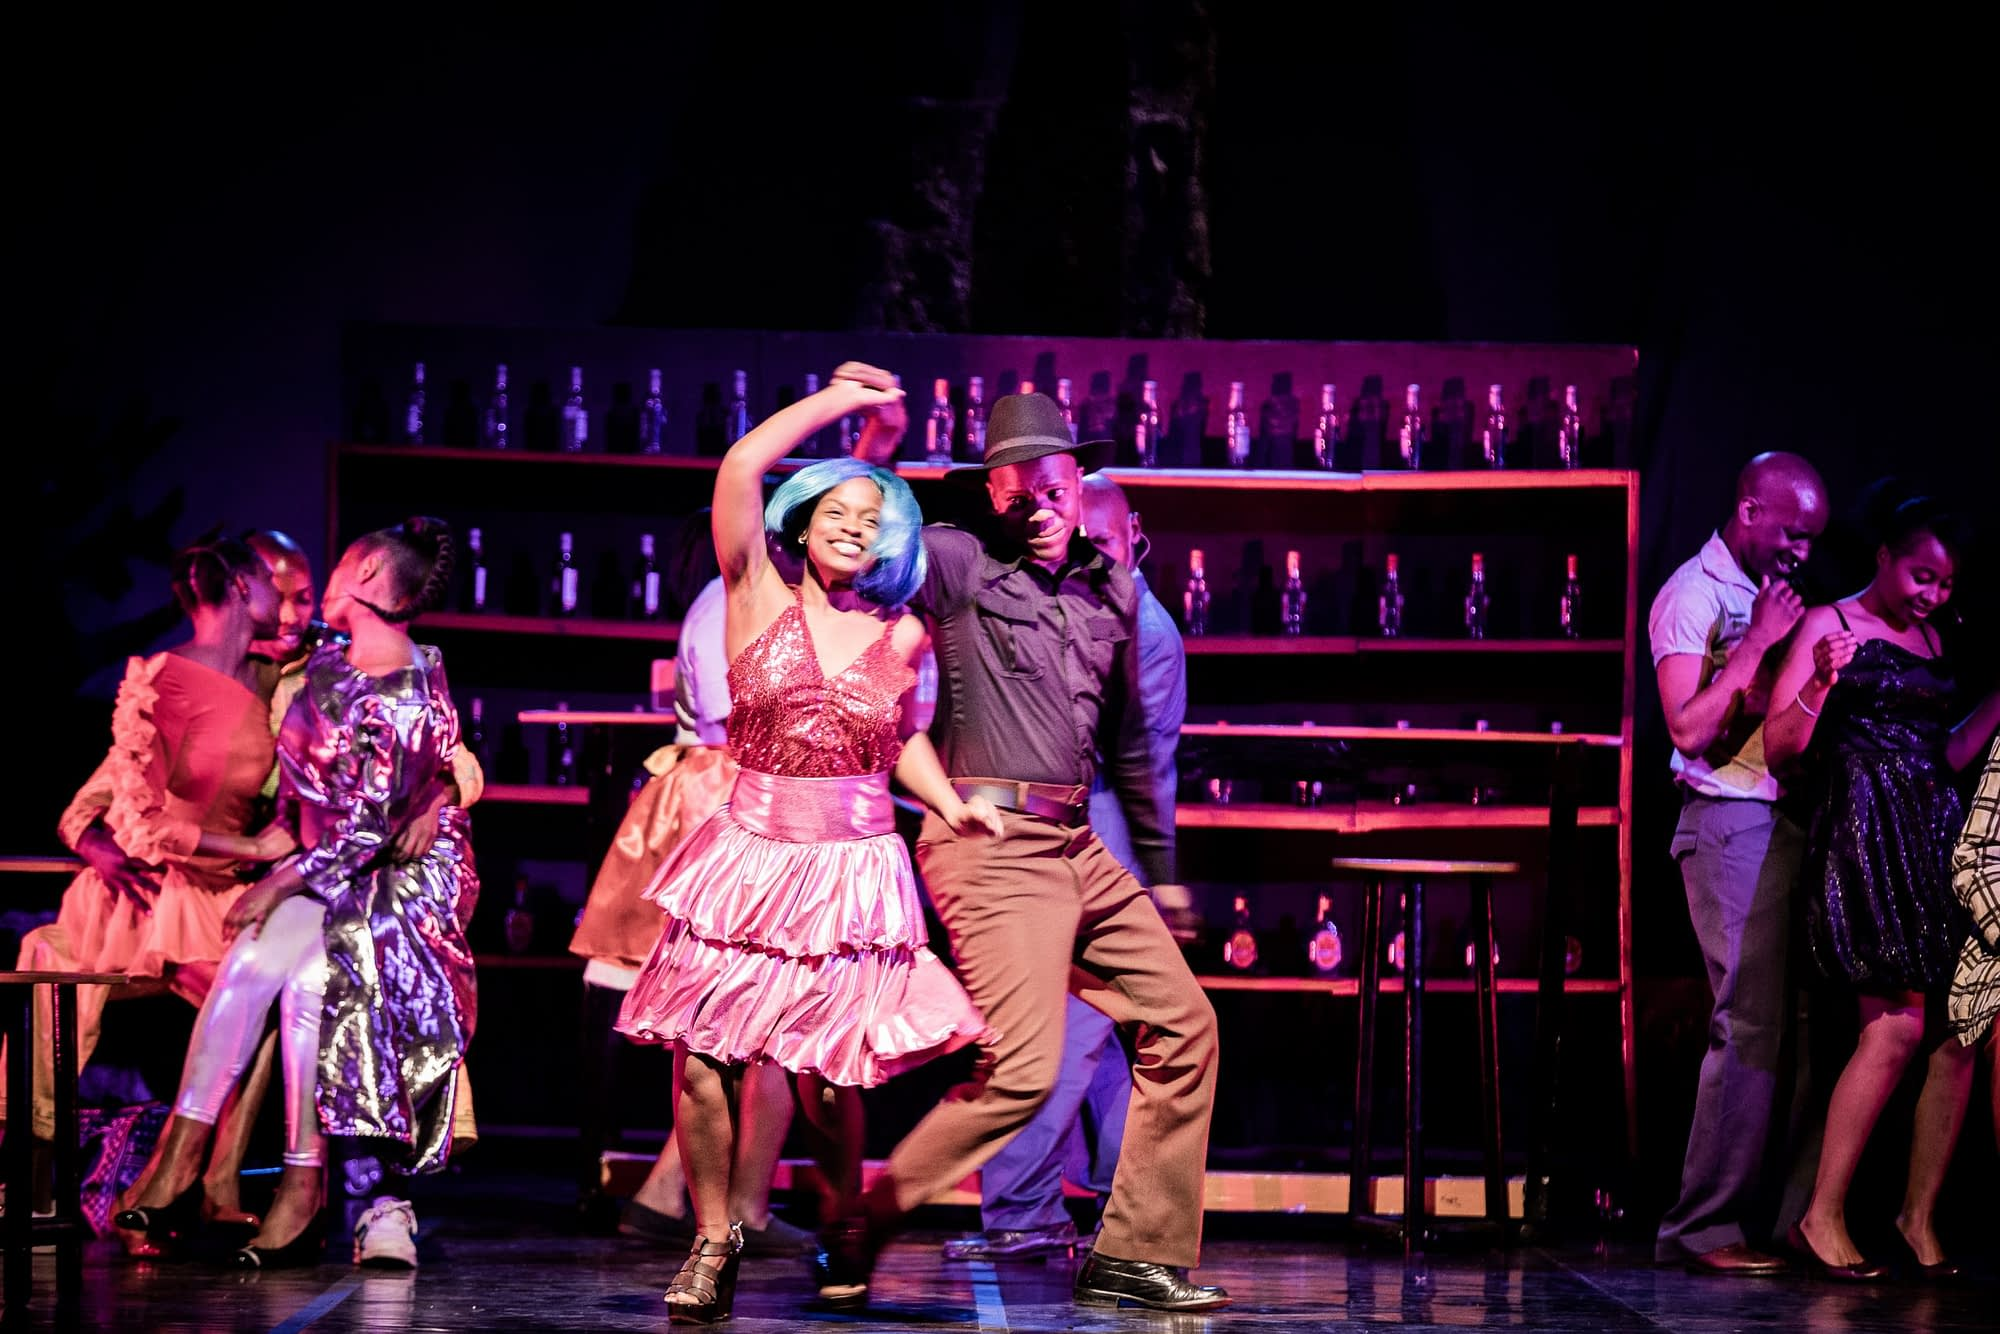 Subira, A New Musical opened on Friday, 30th of July 2021 at Kenya National Theatre (Photos by Ignacio Hennigs)